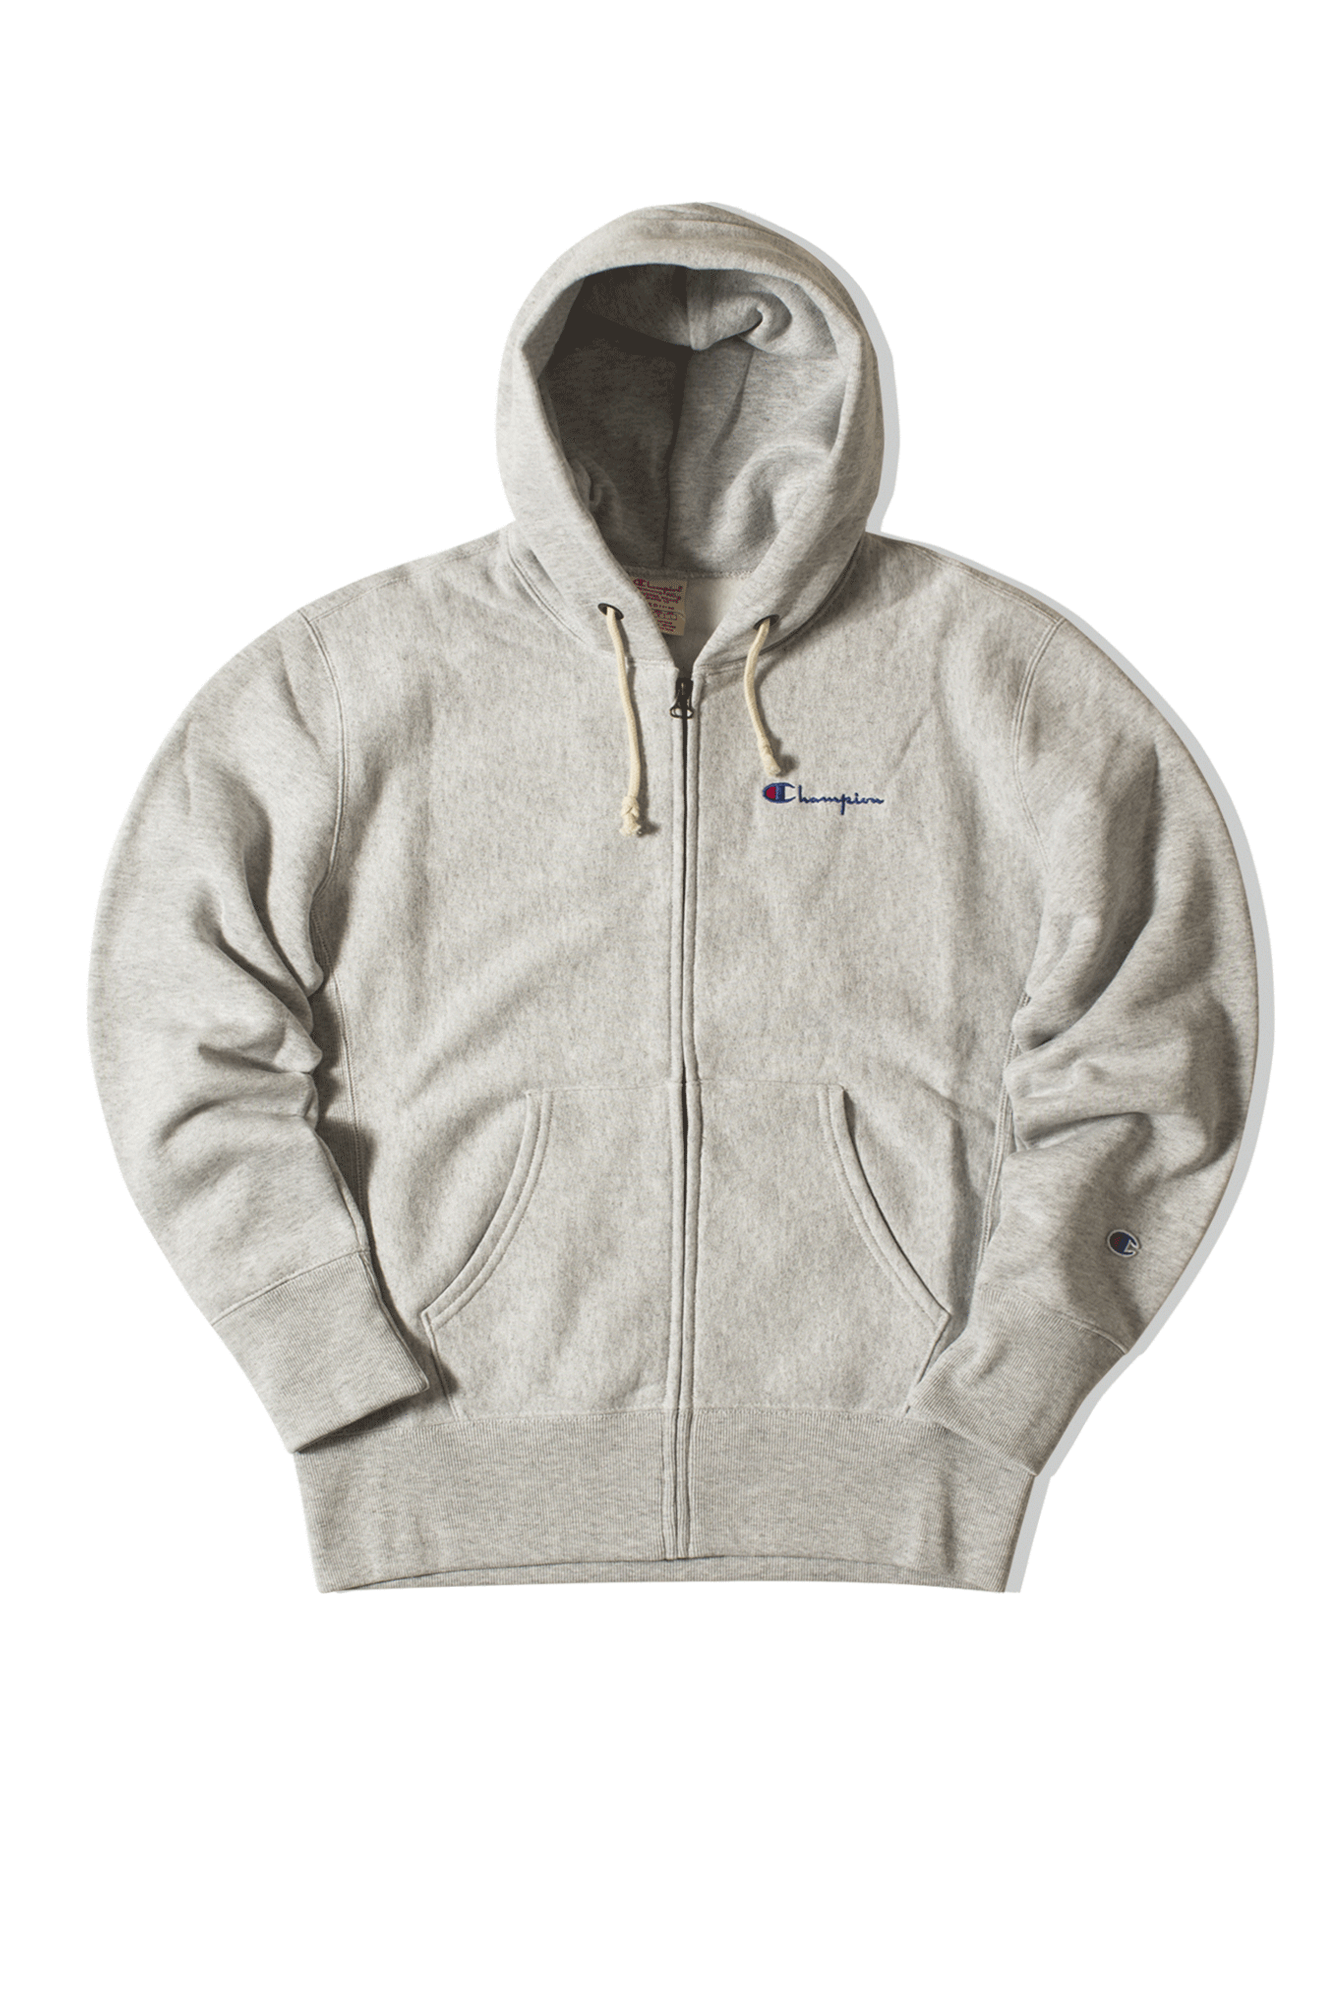 Hooded Zip-up sweatshirt Grey